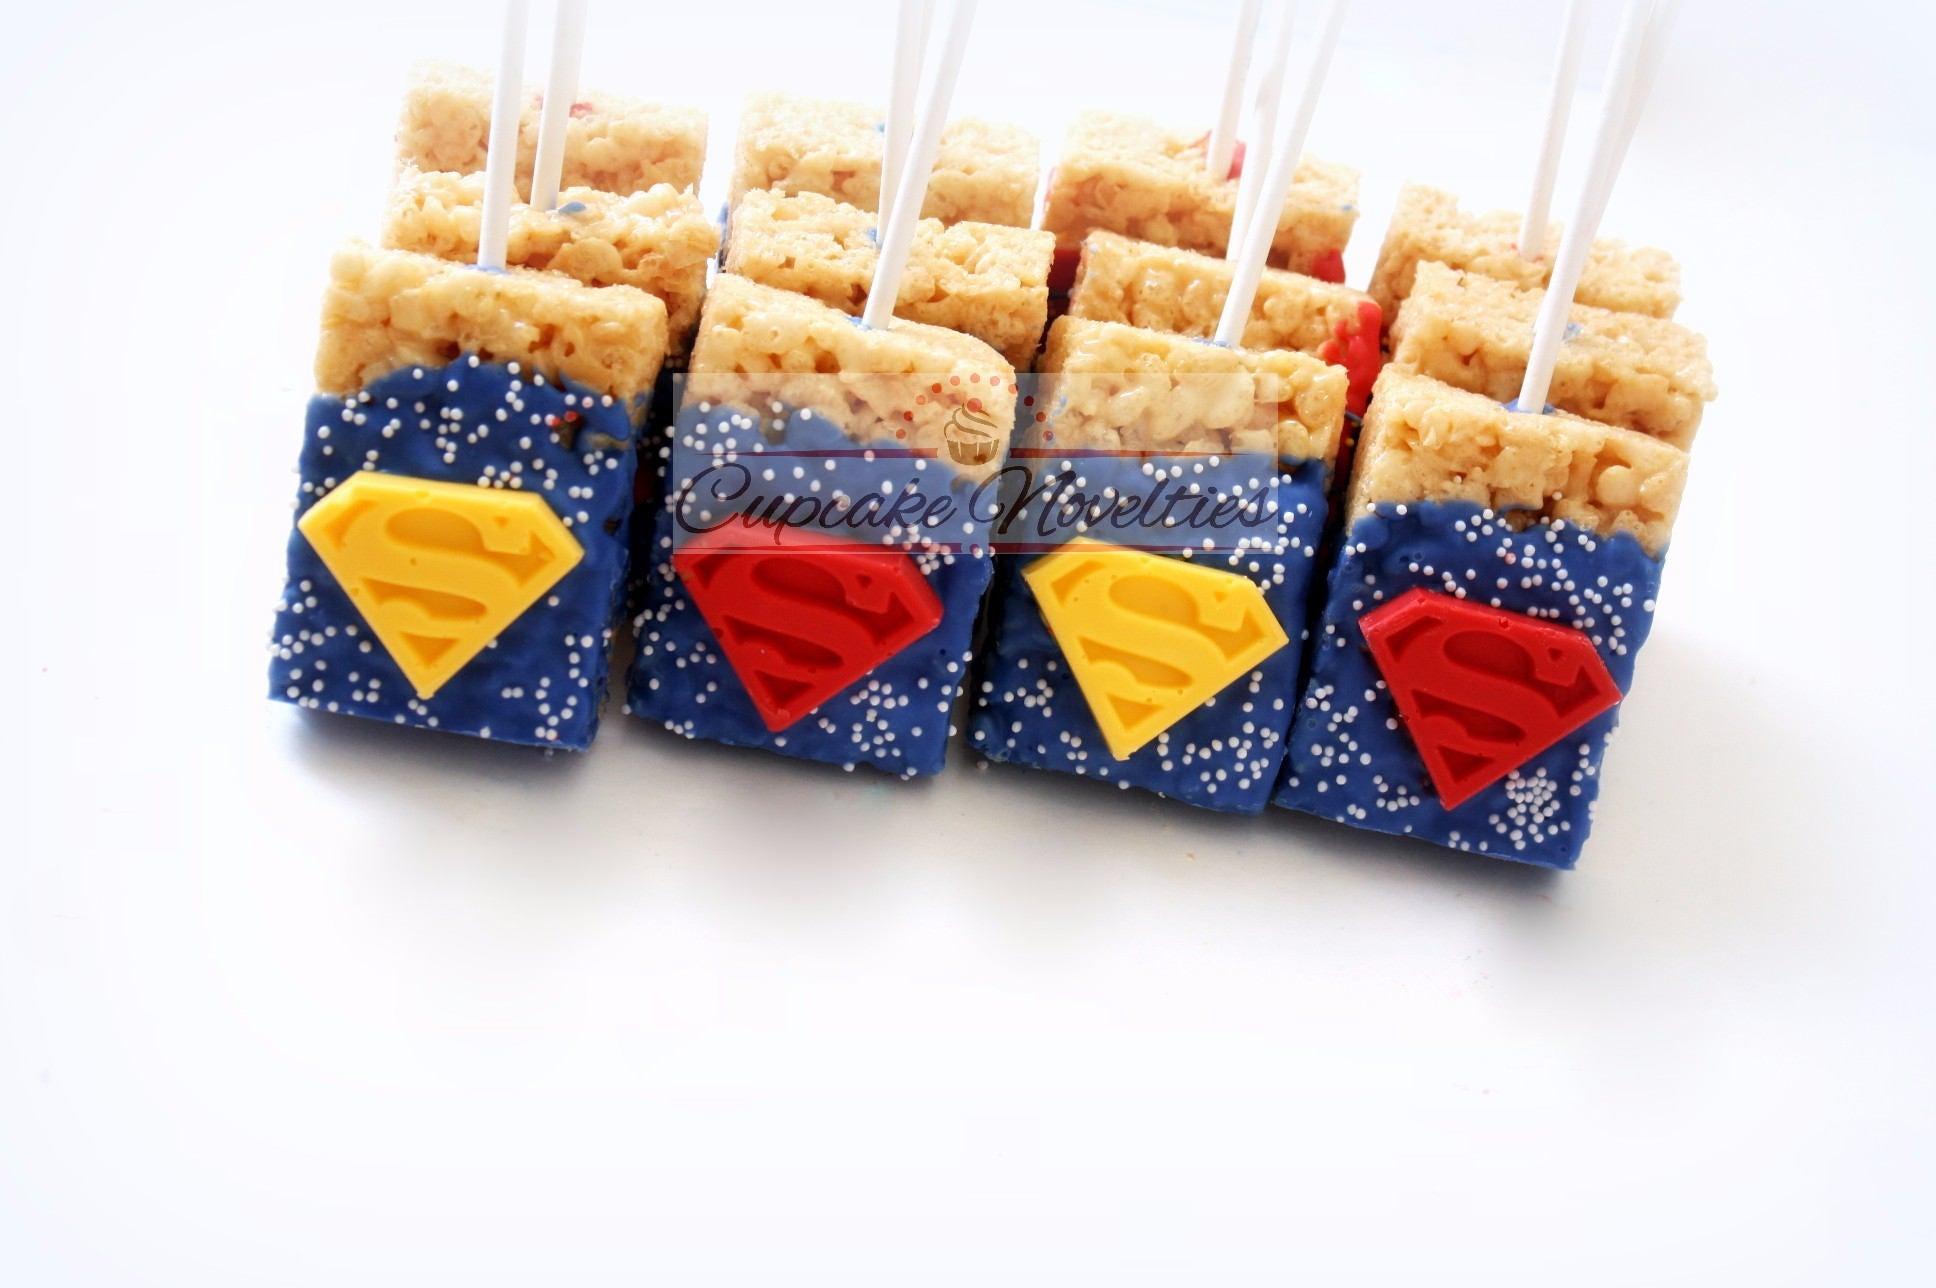 Superman Birthday Superman Party Favors Superman Cookies Superhero Birthday Super Hero Birthday Party Favors Superman Birthday Party Decor